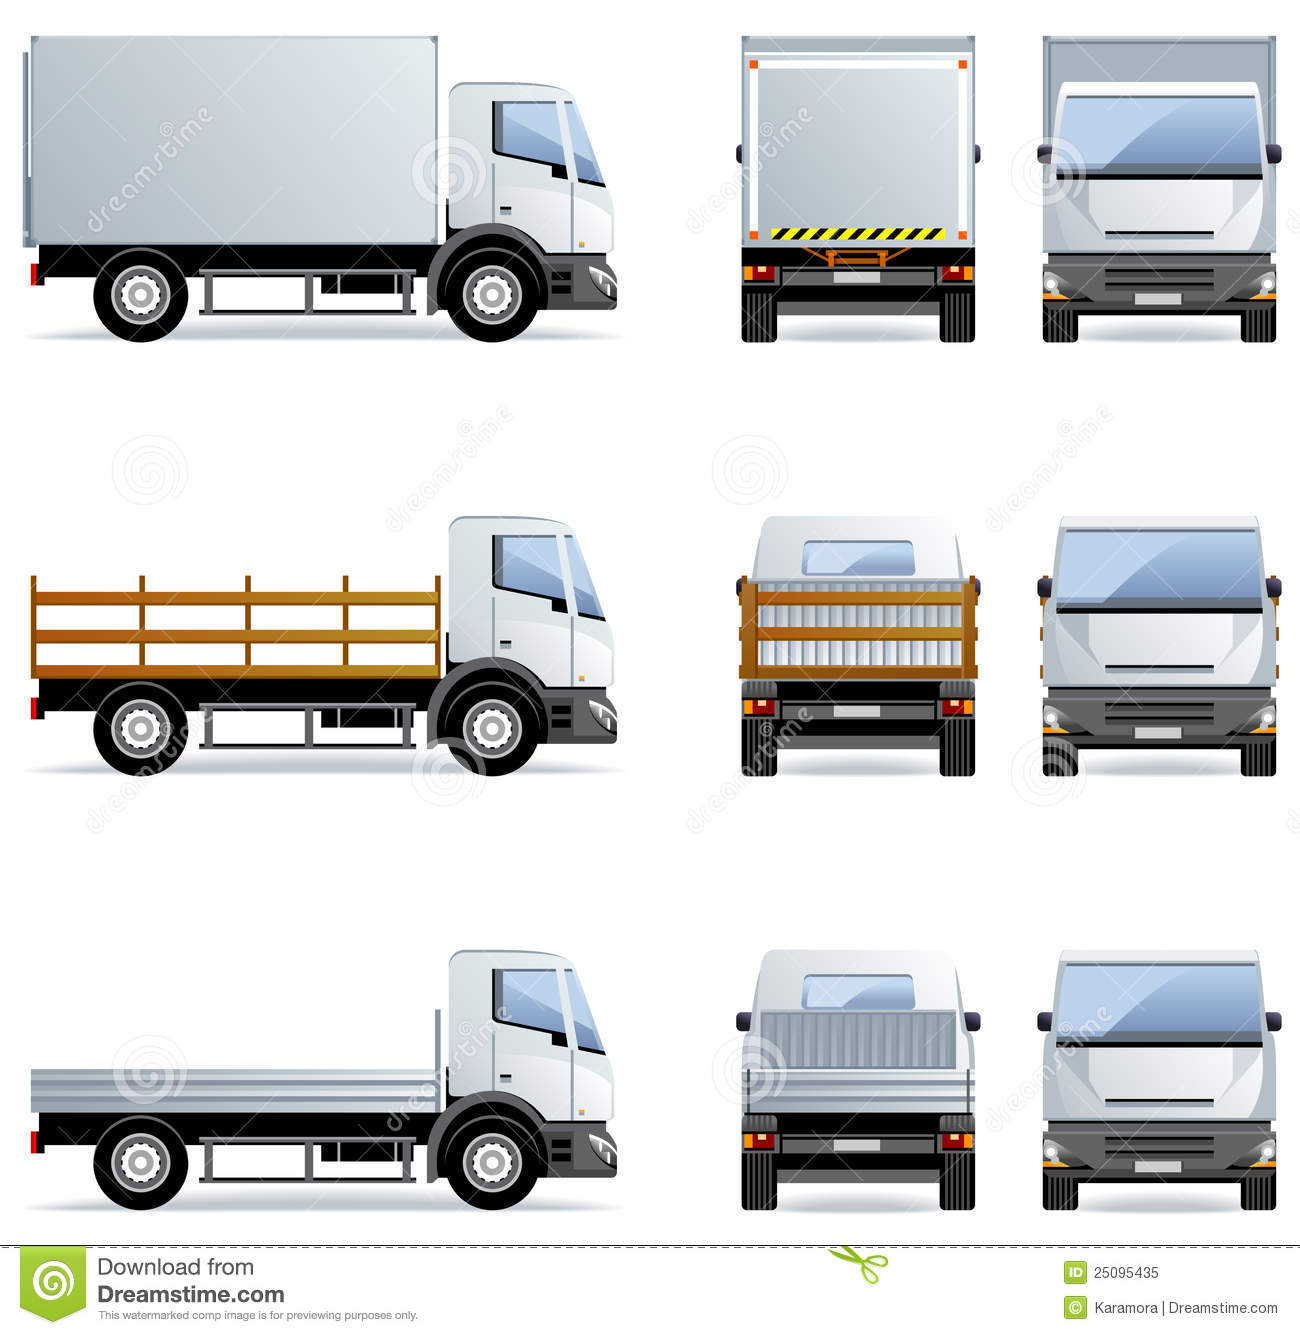 Truck Royalty Free Stock Photo - Image: 25095435